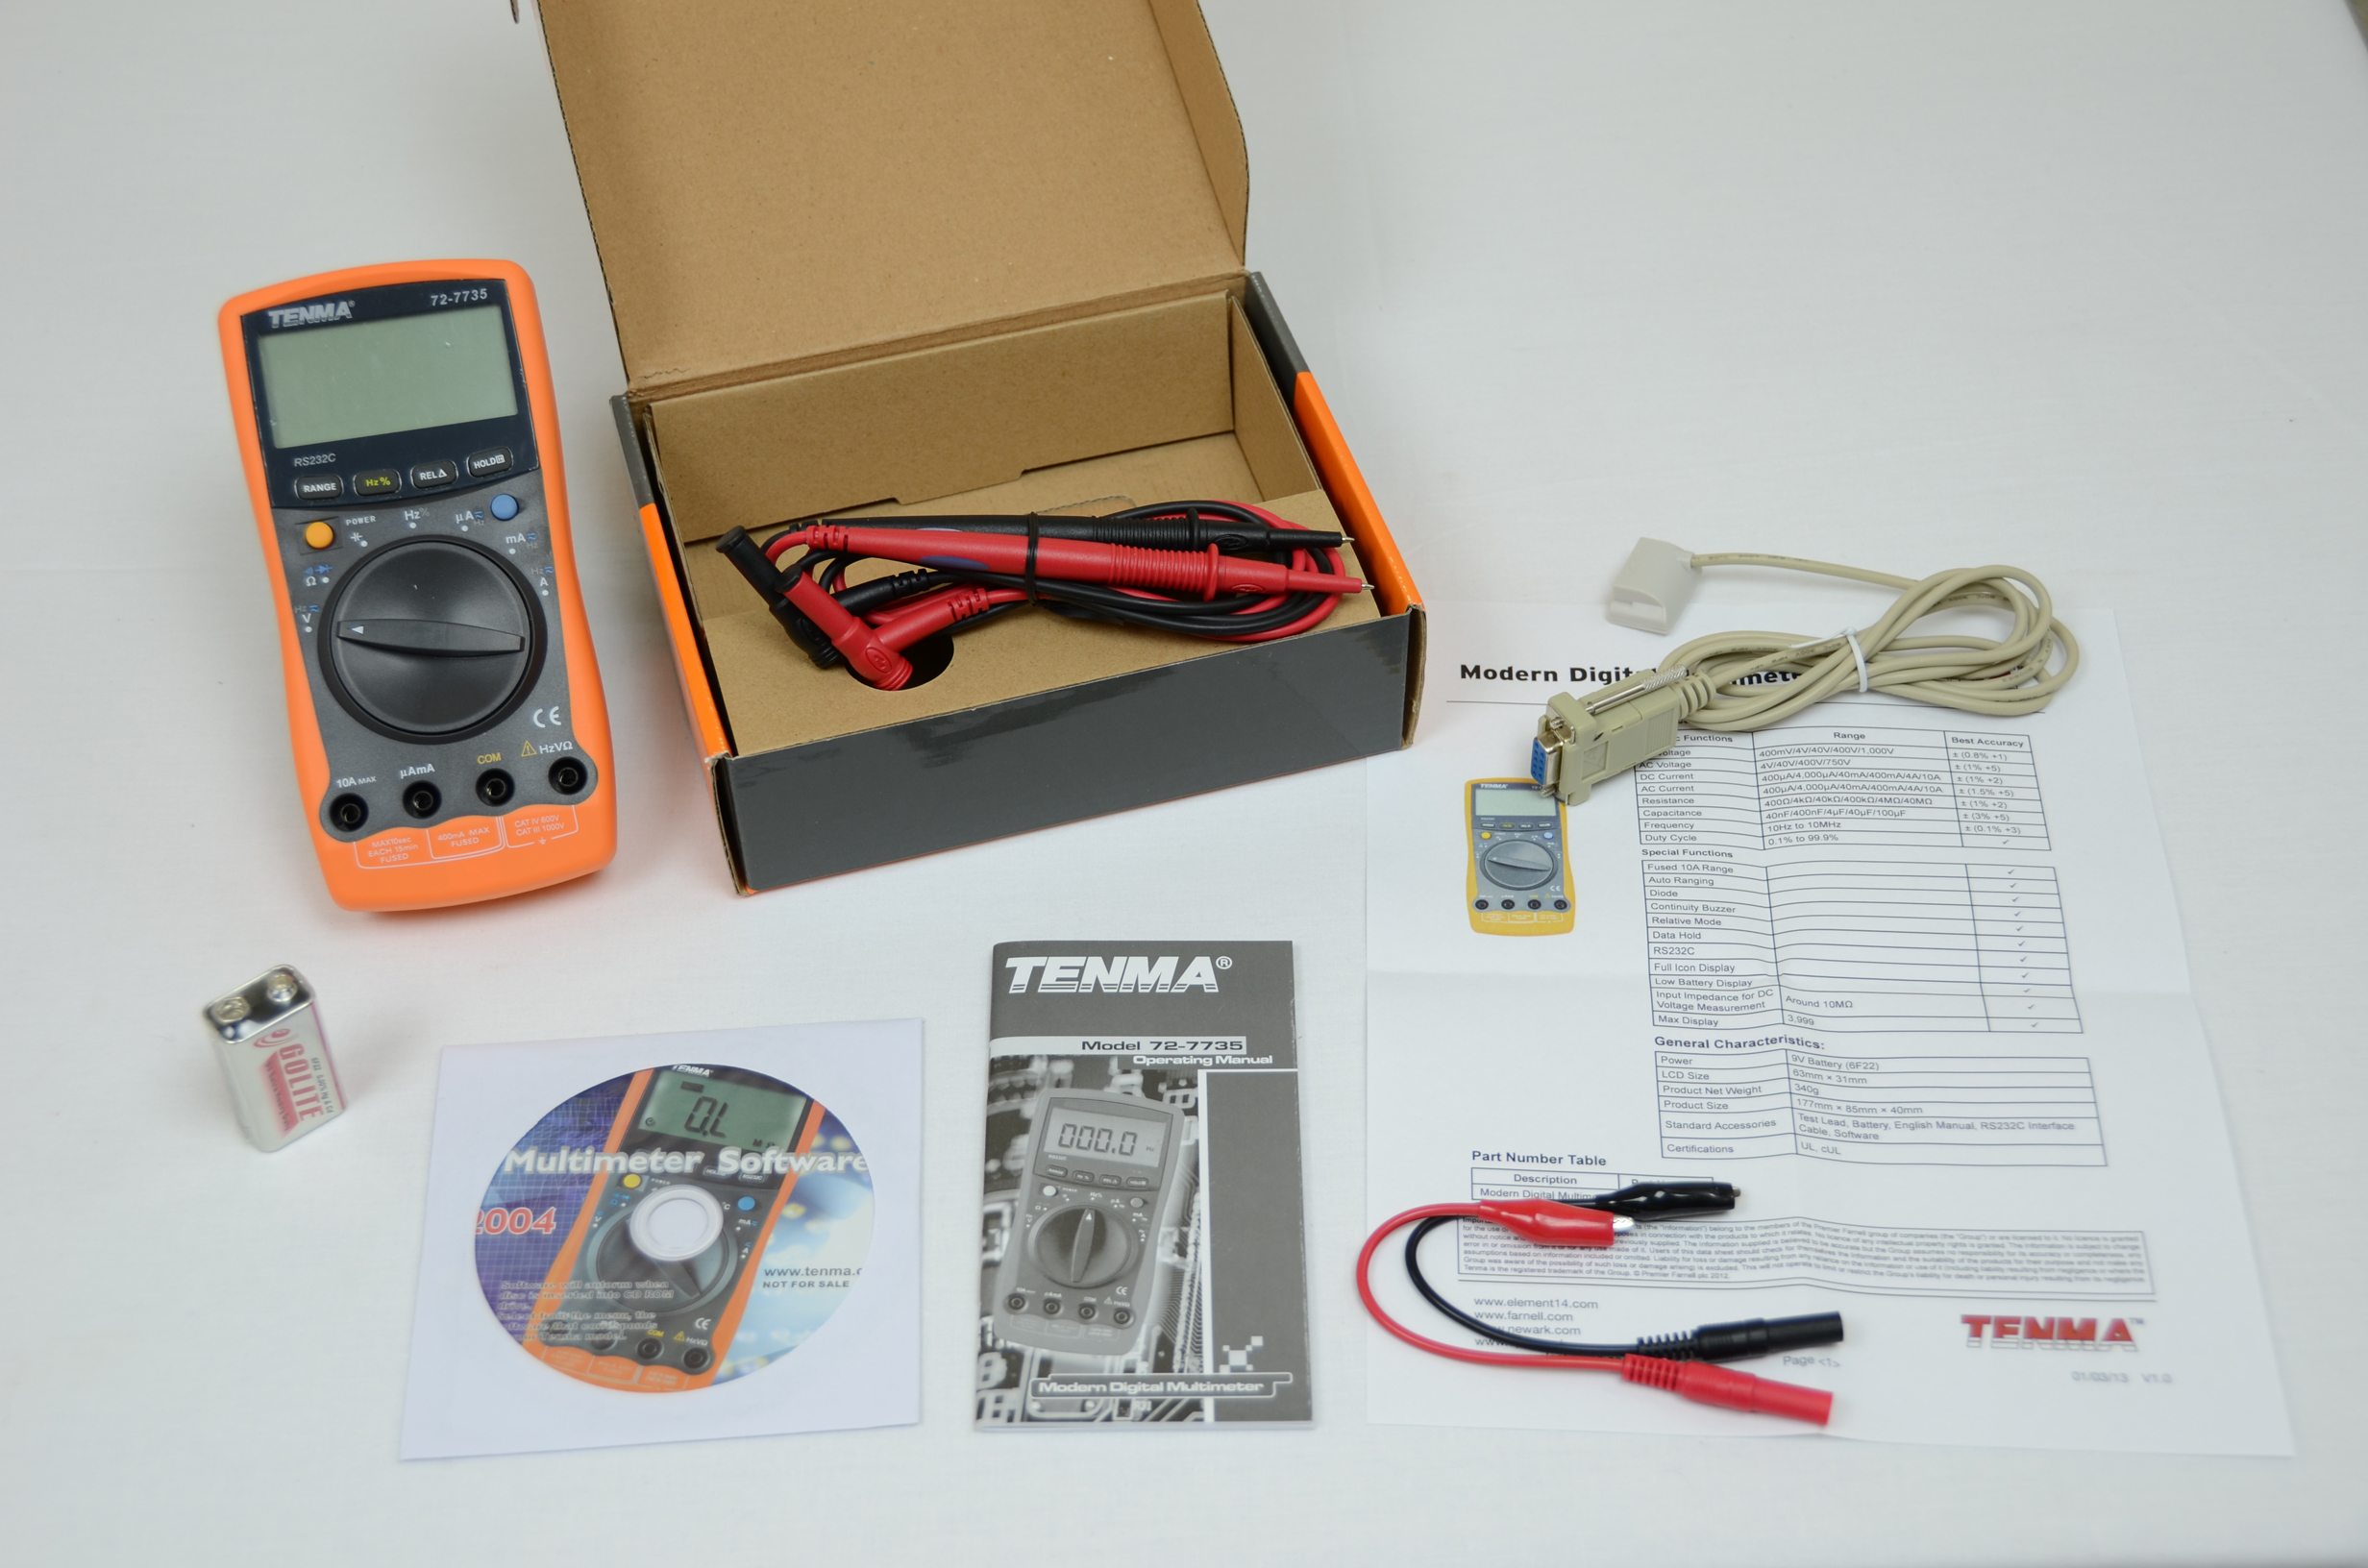 Tenma 72 7735 Unpacking Pyroelectro News Projects Tutorials Simple Touch Screen Interface Schematic In Case Youre Not Familiar With Some Of These Parts Ill Go Ahead And Describe Them Quickly Dmm Is Short For Digital Multimeter Which What This